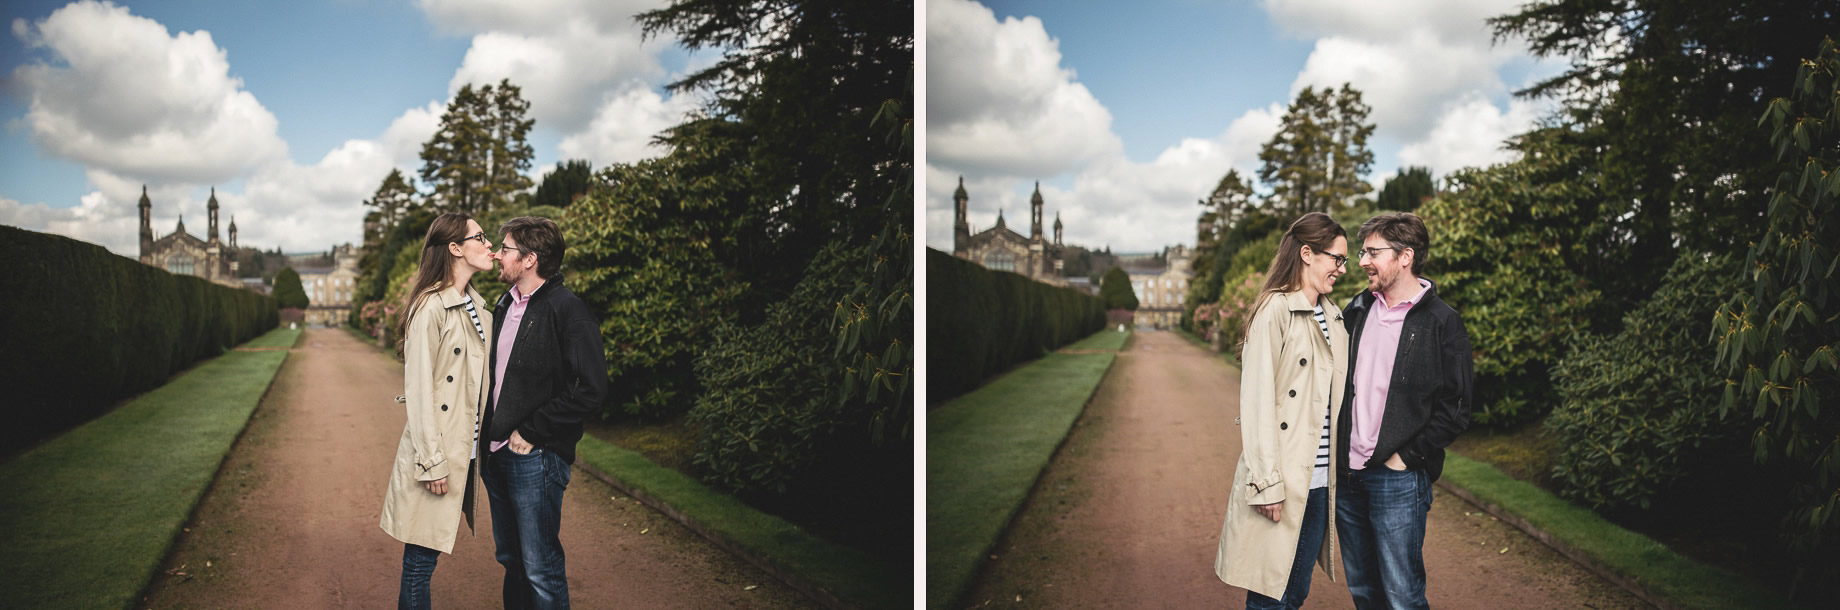 Willow and Luke Portraits at Stonyhurst 011